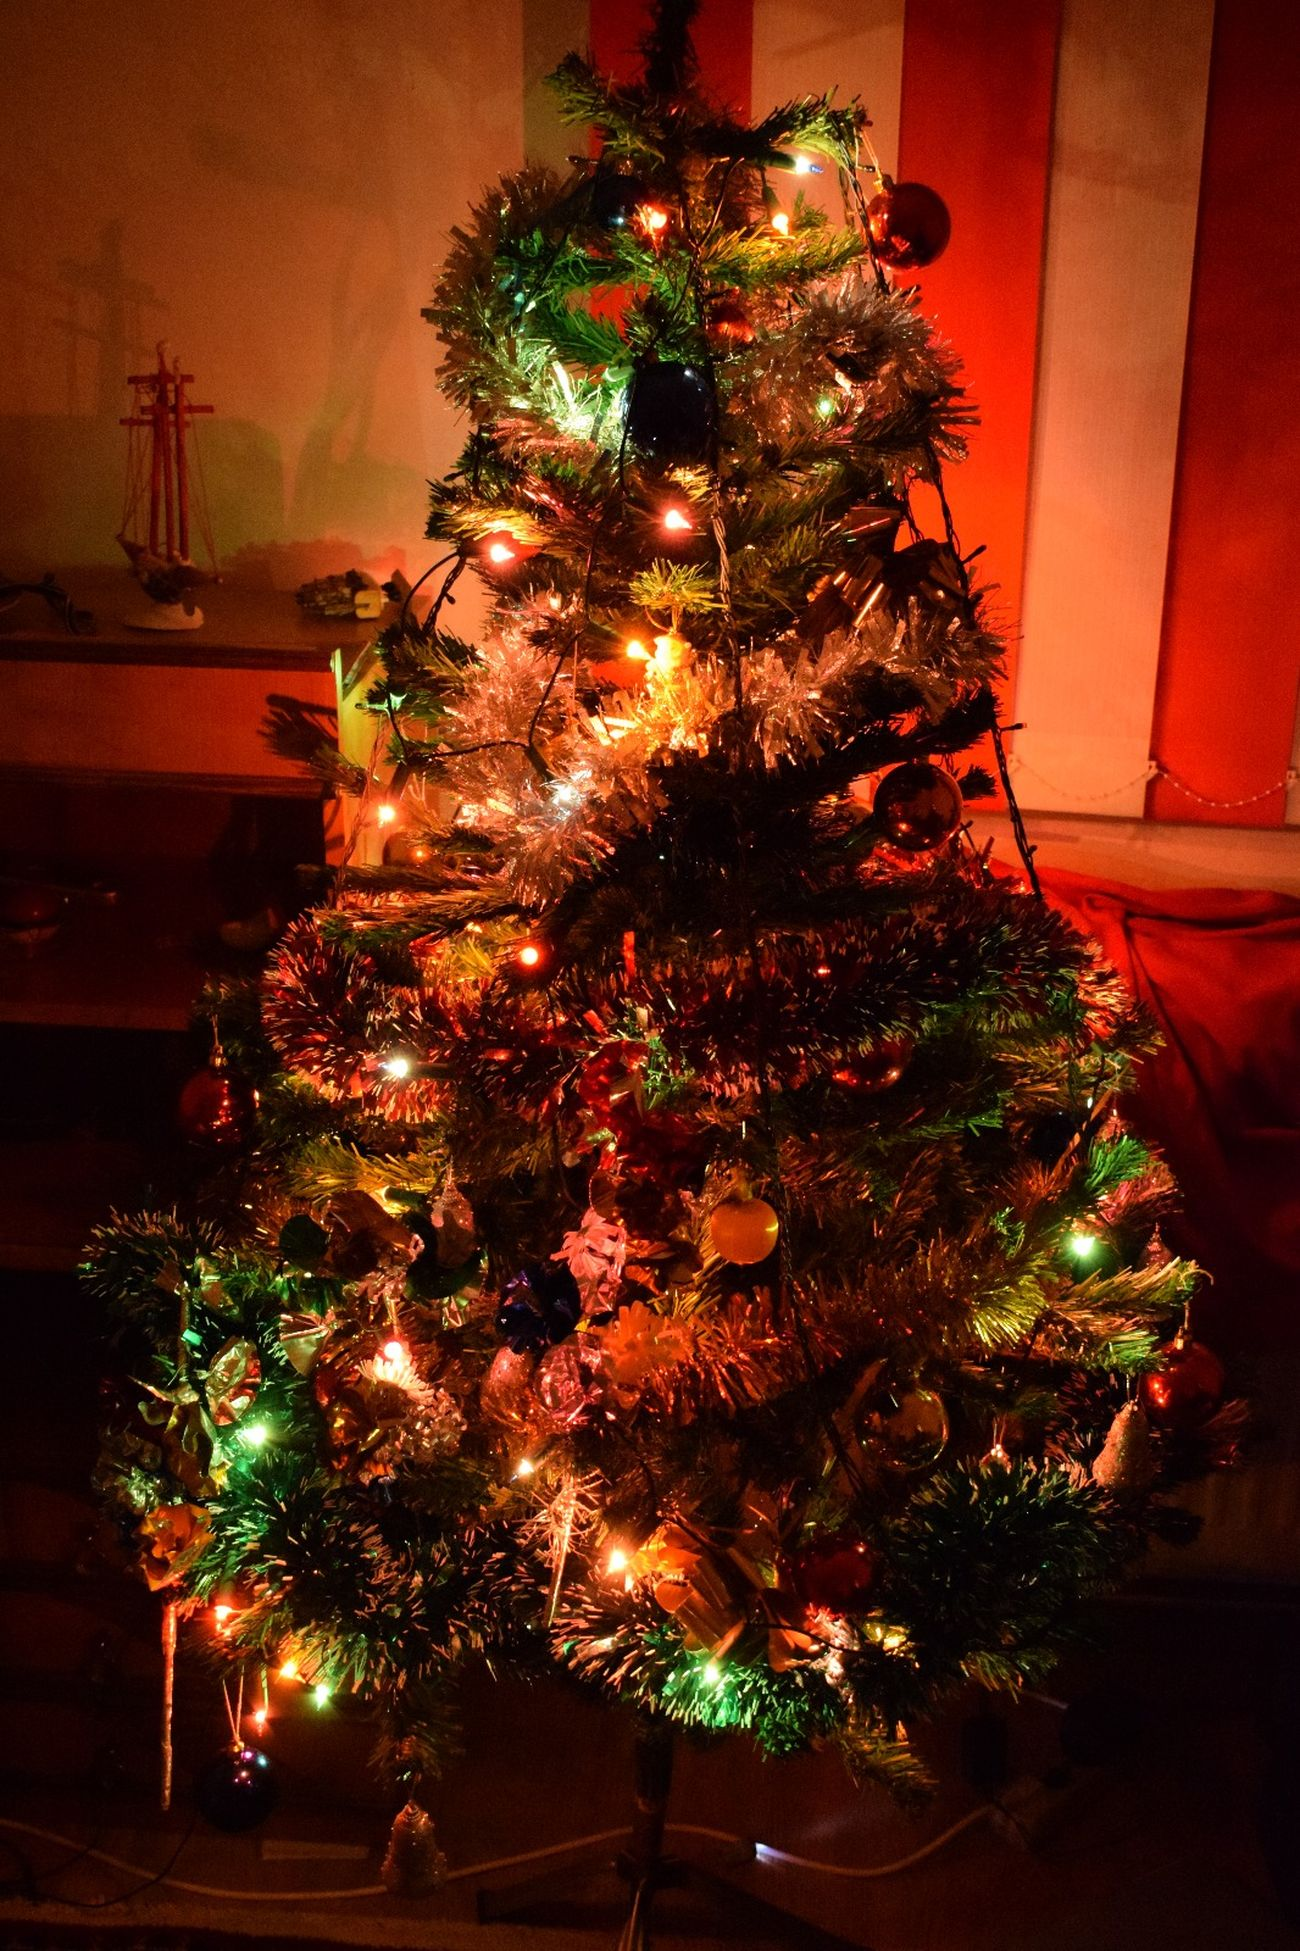 Christmas Christmas Tree Tree Celebration Tradition Christmas Decoration Christmas Lights Illuminated No People Christmas Ornament Vacations Moments Multi Colored Ready For Christmas! ! Red Decoration Tradition Christmas Celebration Christmas Lights Cristmas Time♥ CRISTMAS💙 NIKON D5300